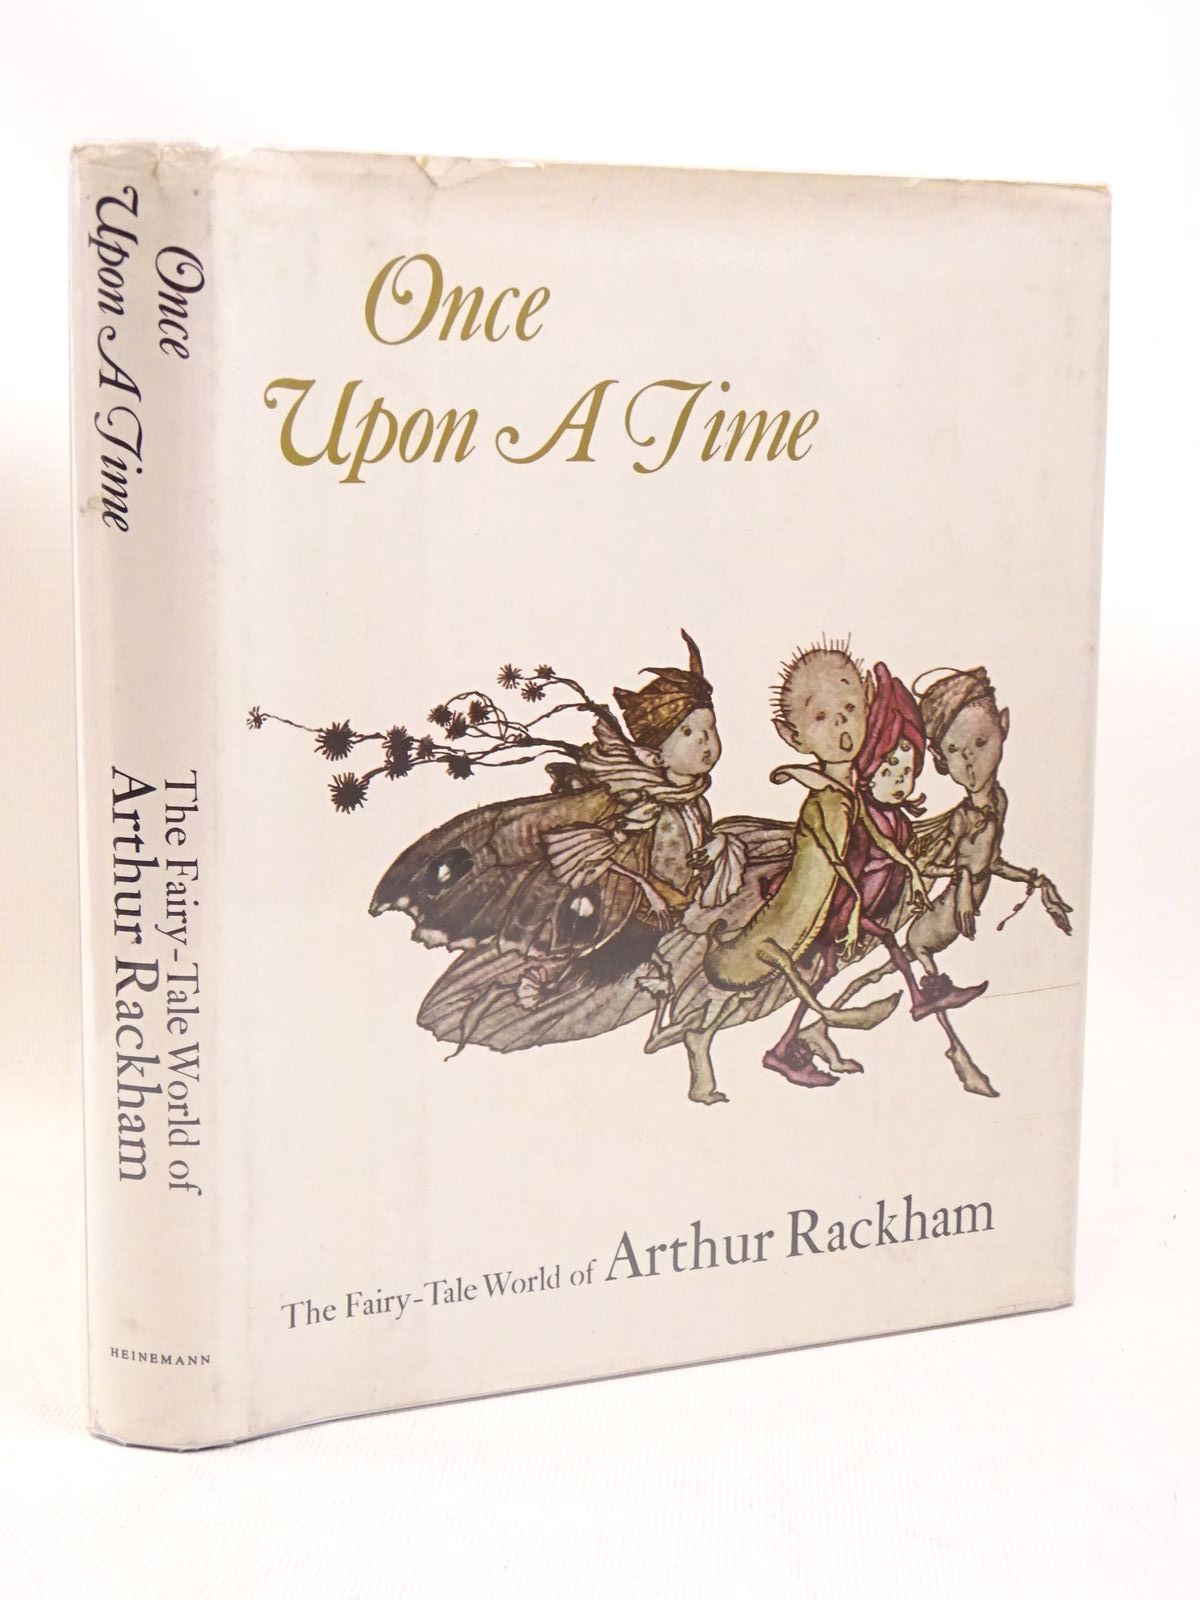 Photo of ONCE UPON A TIME THE FAIRY-TALE WORLD OF ARTHUR RACKHAM written by Darrell, Margery illustrated by Rackham, Arthur published by Heinemann (STOCK CODE: 1317440)  for sale by Stella & Rose's Books